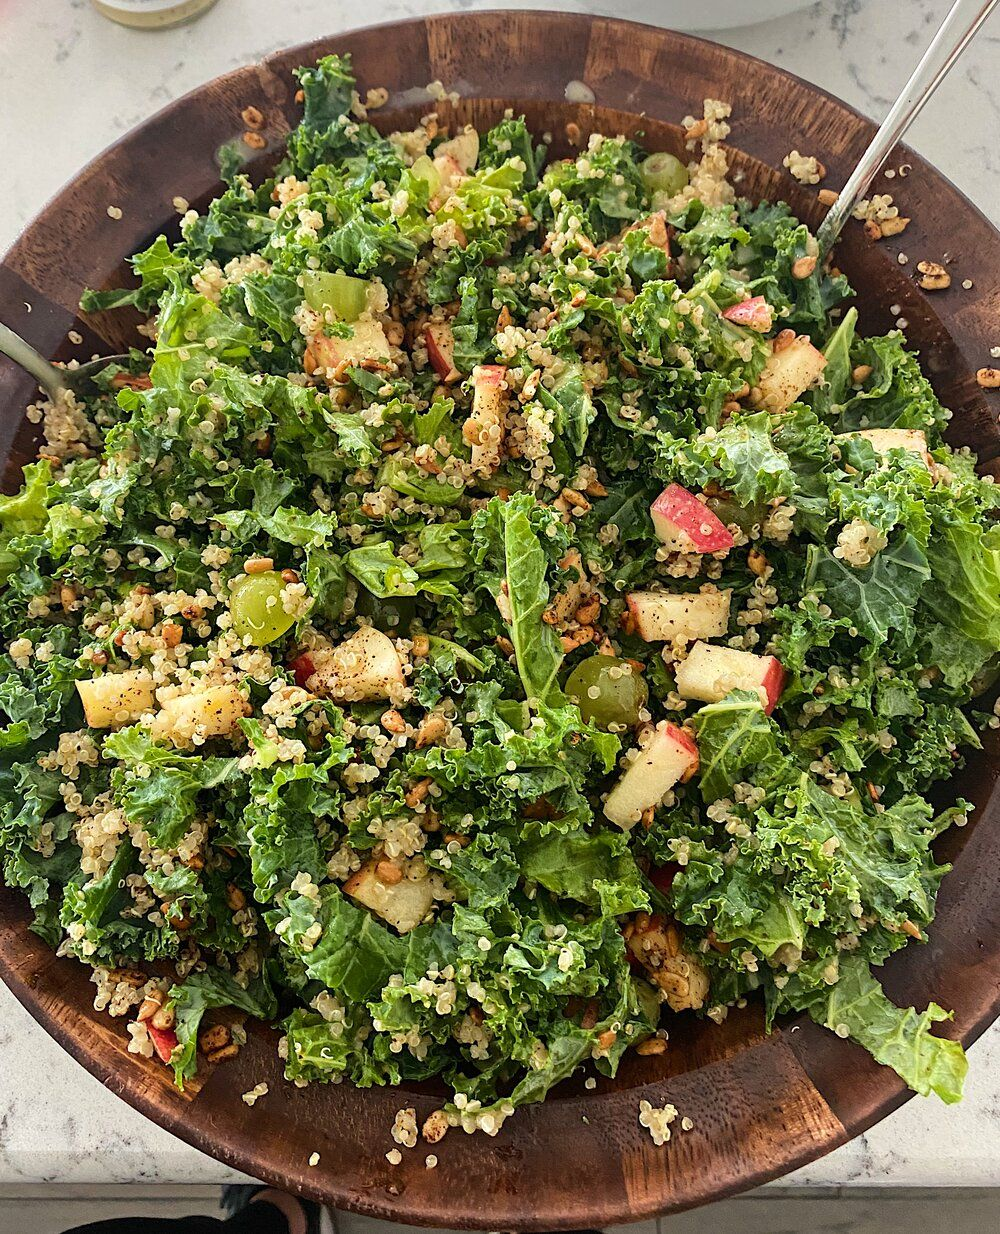 Kale and quinoa salad with spicy sunflower seeds kale